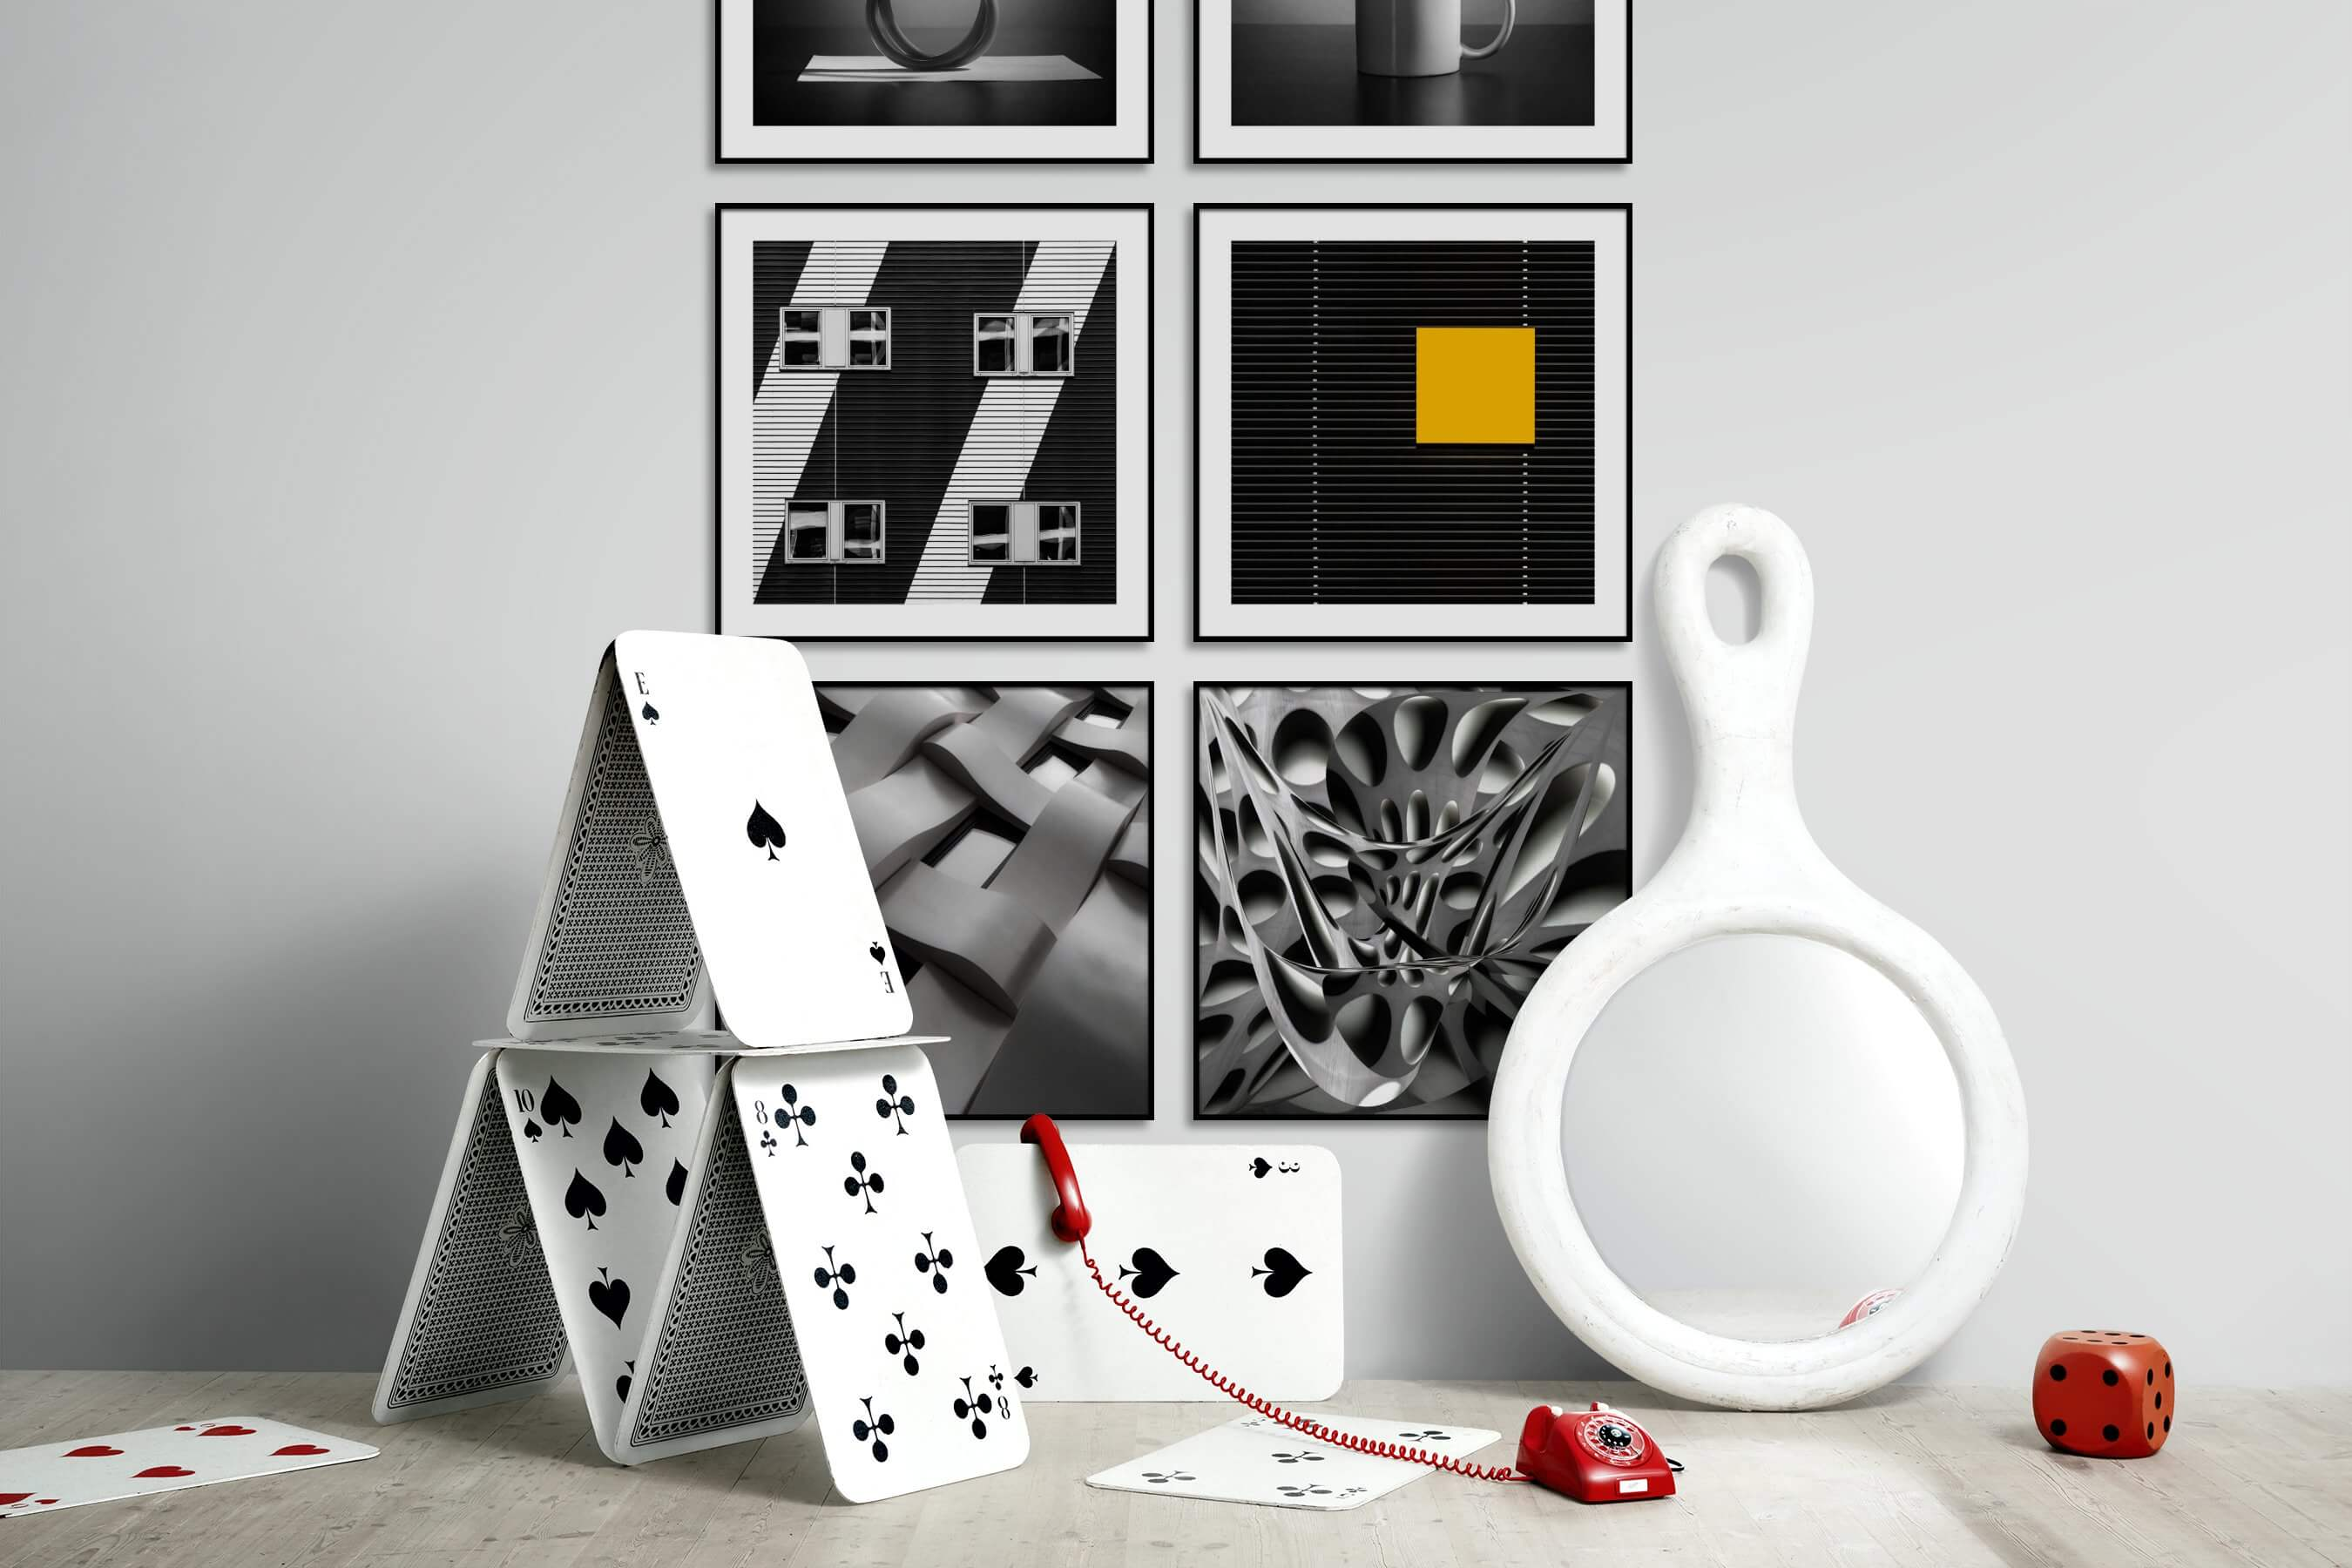 Gallery wall idea with six framed pictures arranged on a wall depicting Black & White, For the Minimalist, For the Moderate, City Life, and For the Maximalist